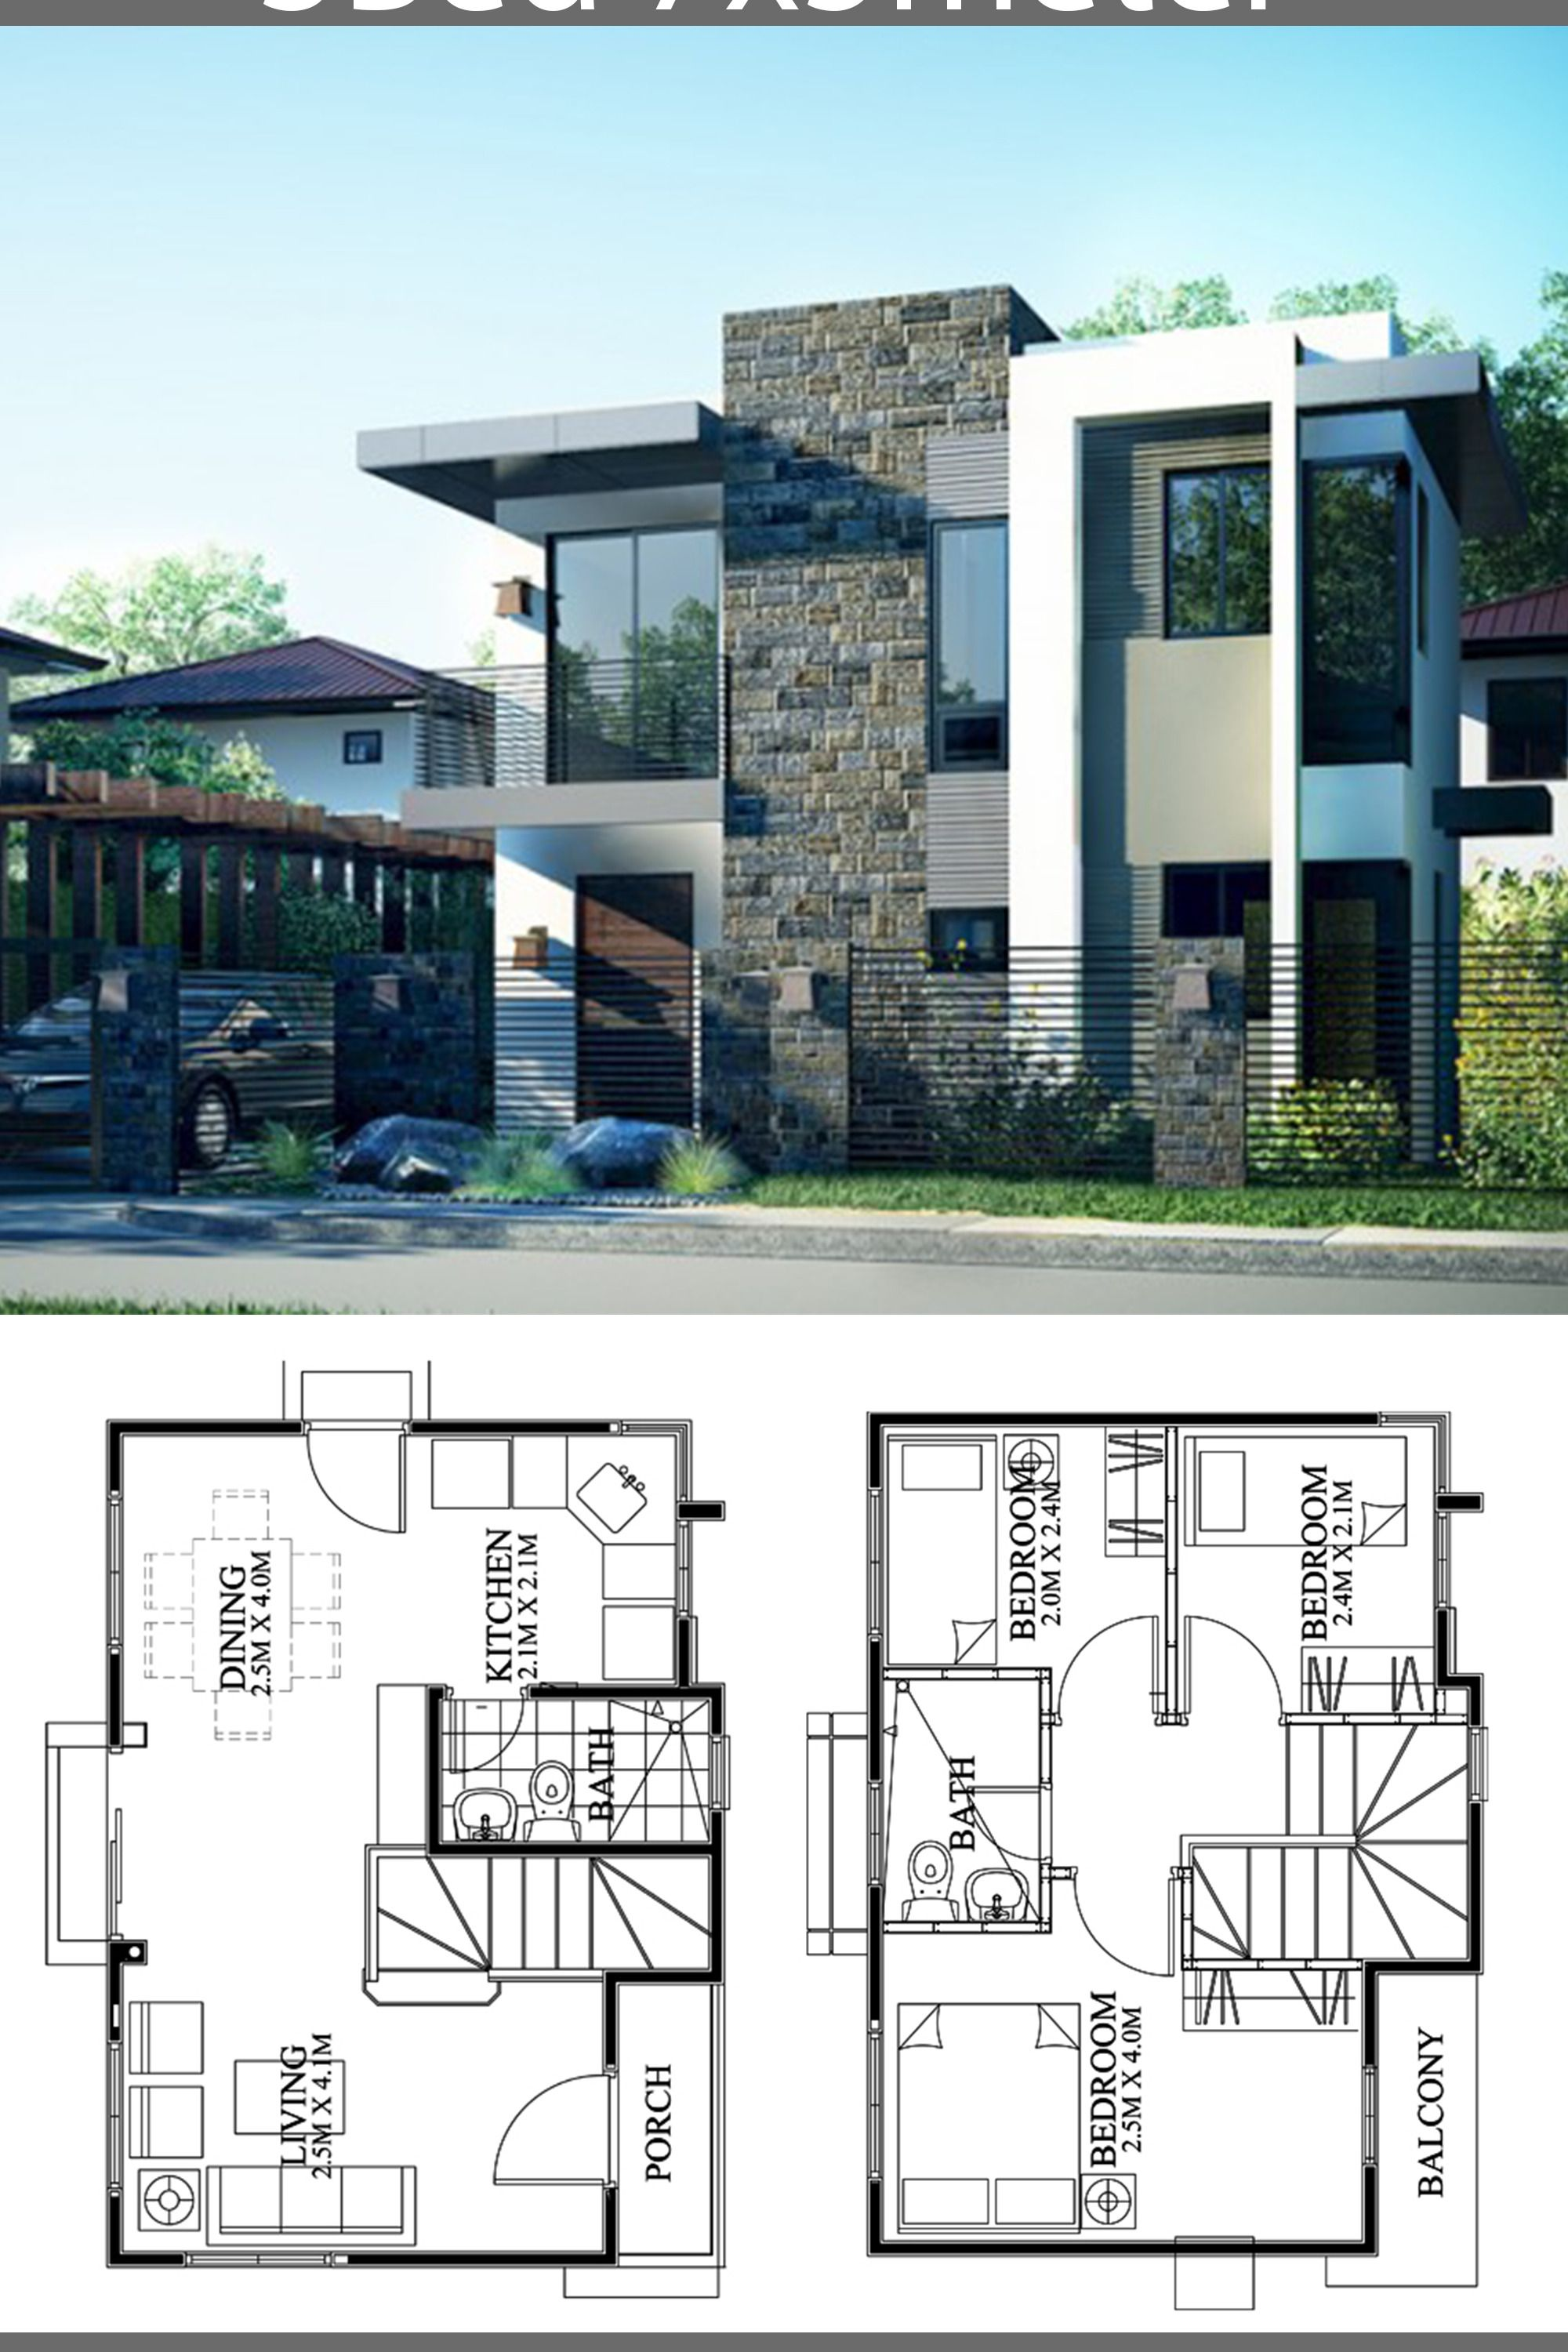 Pin By Ningependa Kula On My Dream Home With Layout Plan Architectural House Plans Small House Design Plans 2 Storey House Design